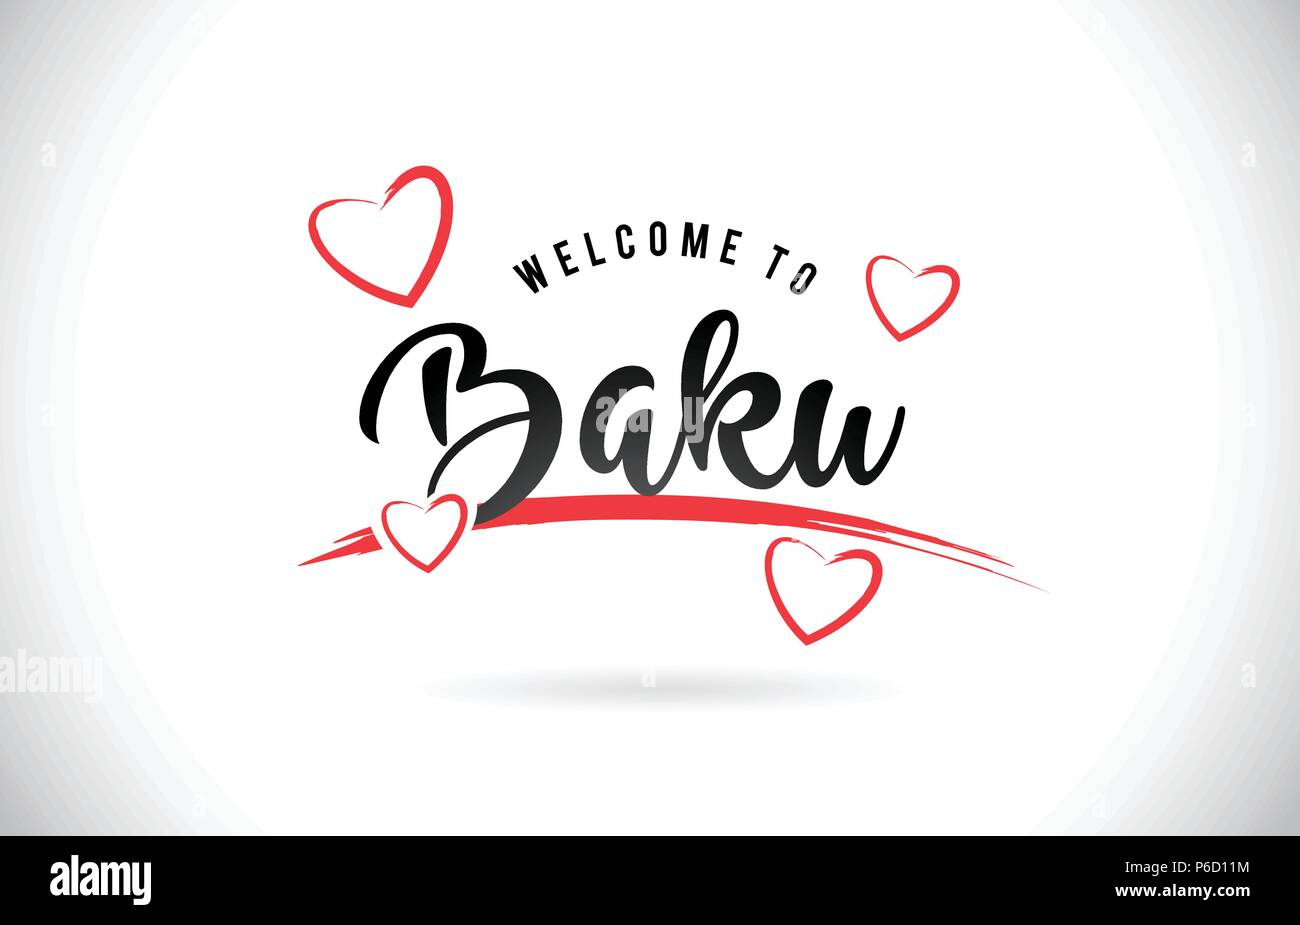 Baku Welcome To Word Text with Handwritten Font and Red Love Hearts Vector Image Illustration Eps. - Stock Vector